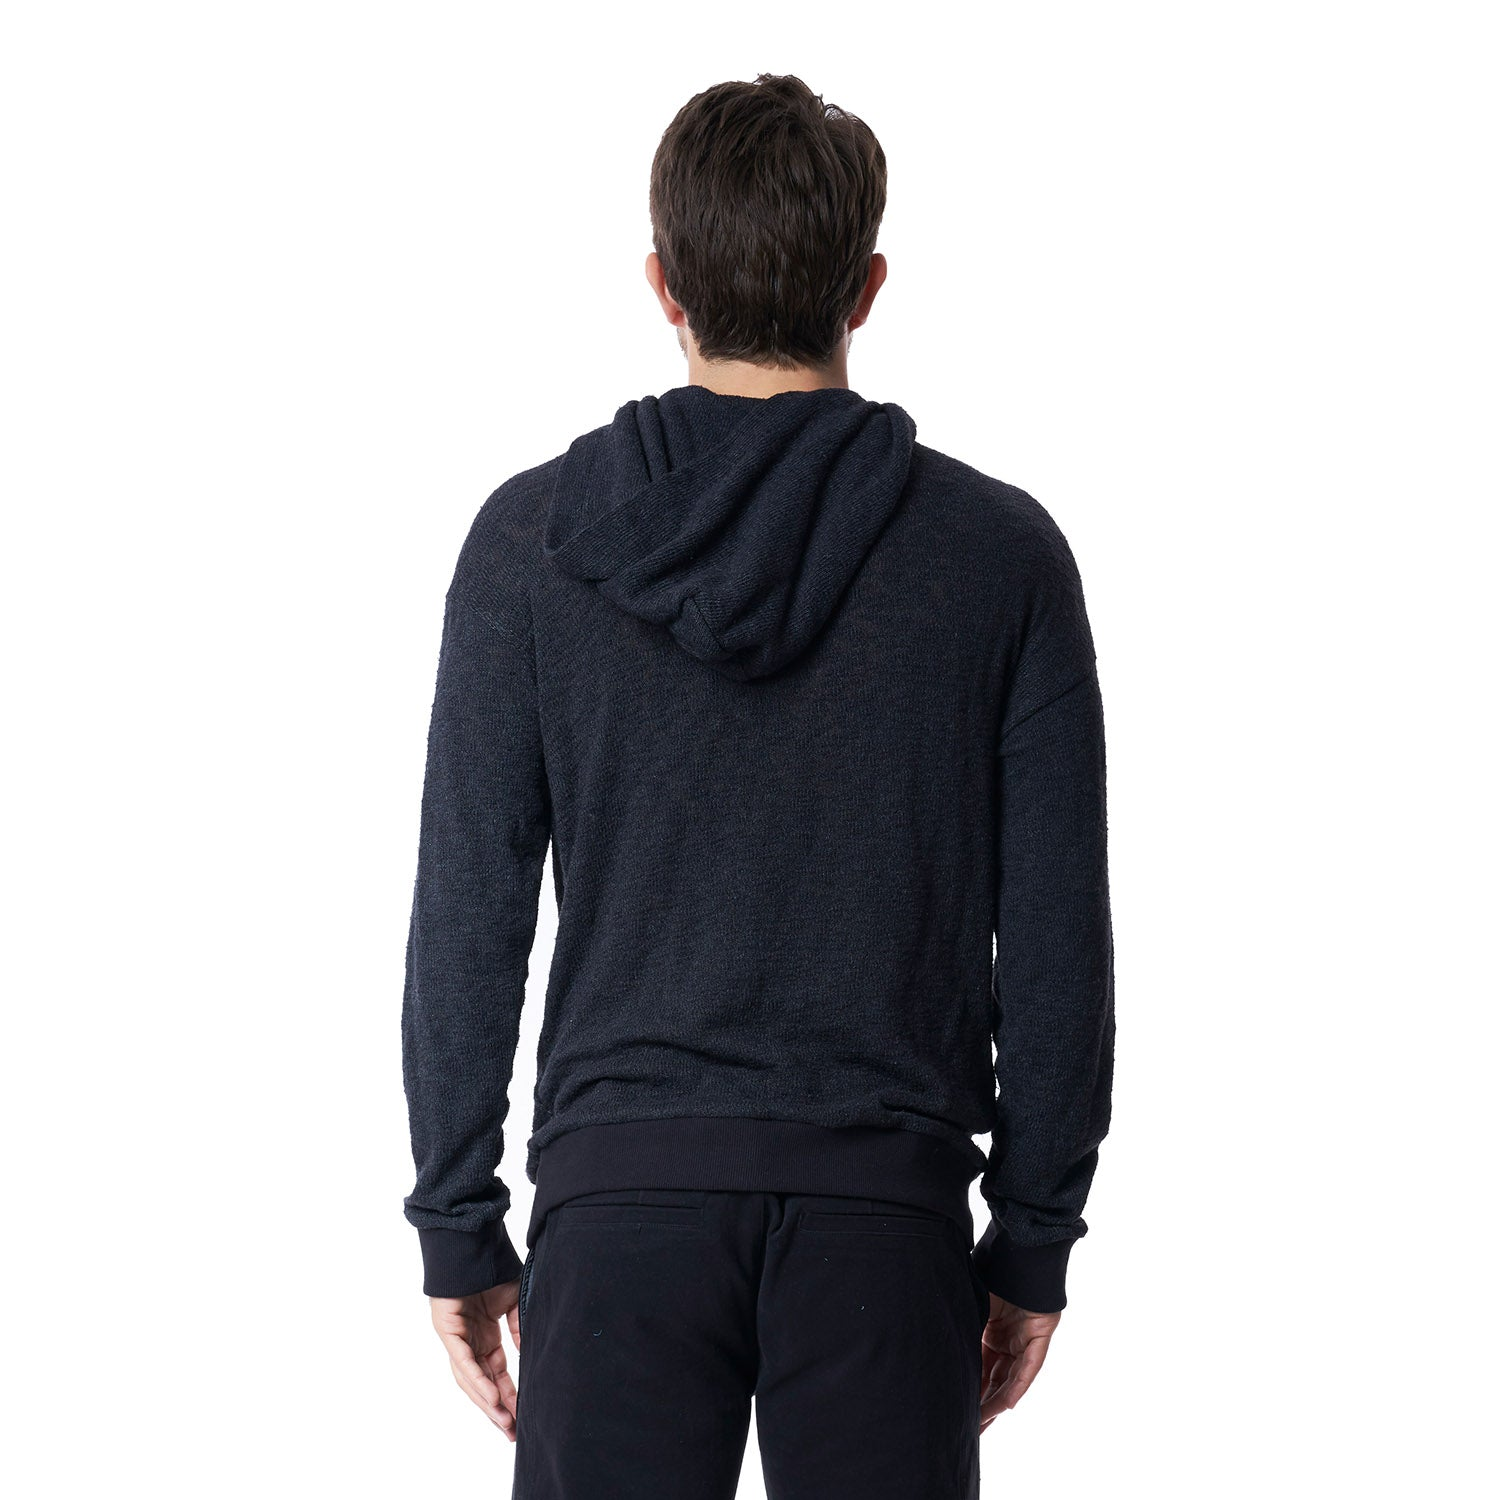 Palm Drop Shoulder Hoodie in Black - Mitchell Evan